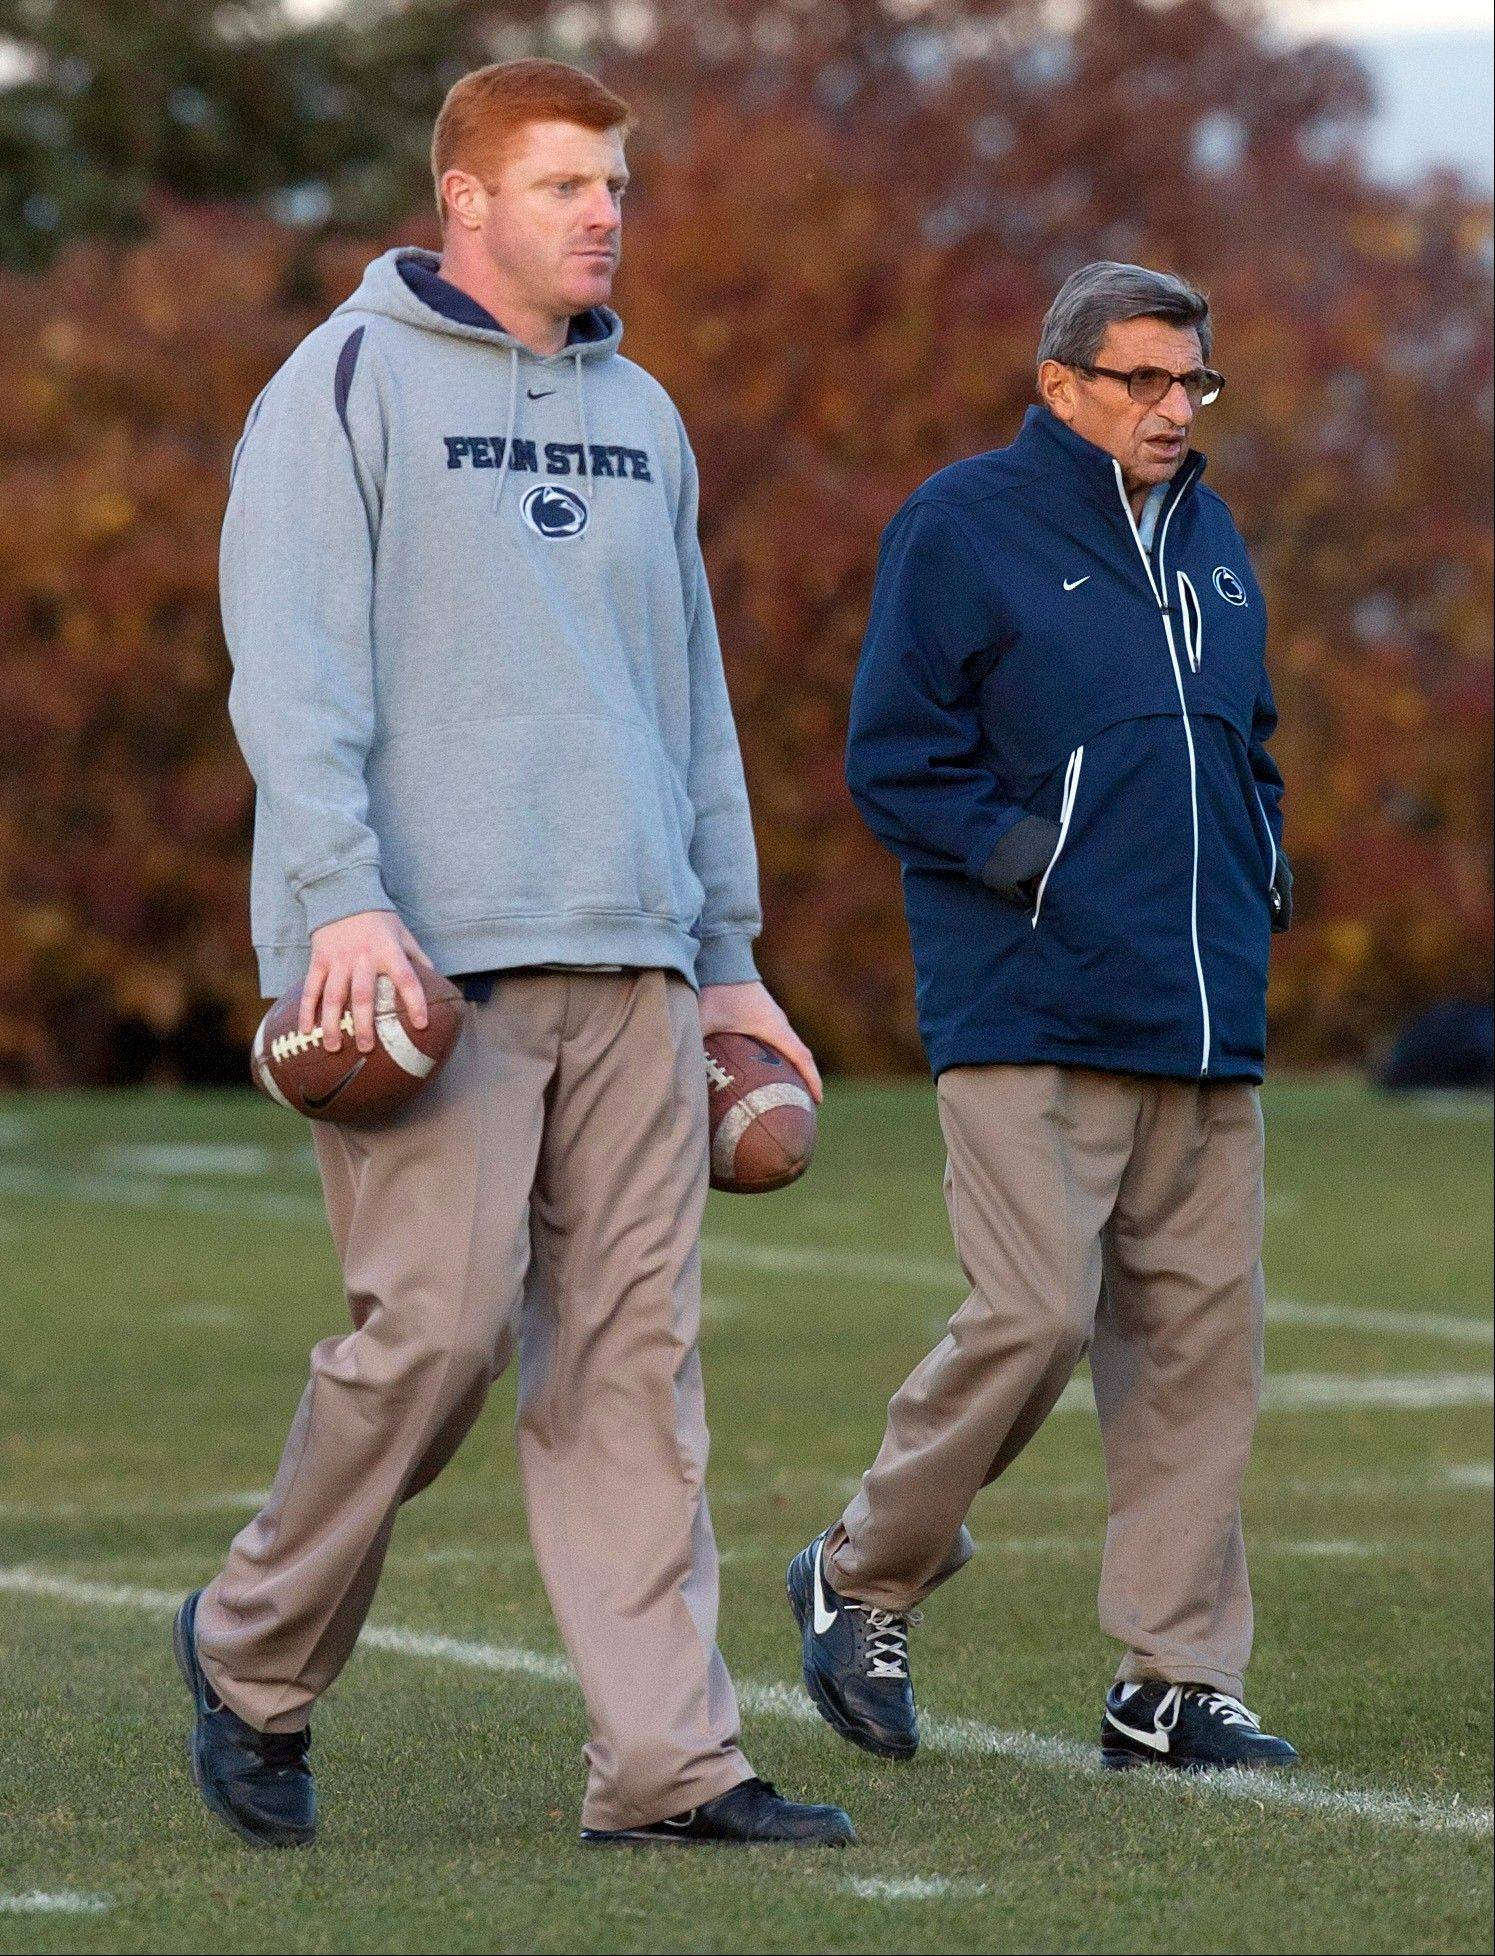 Paterno gone, but questions remain